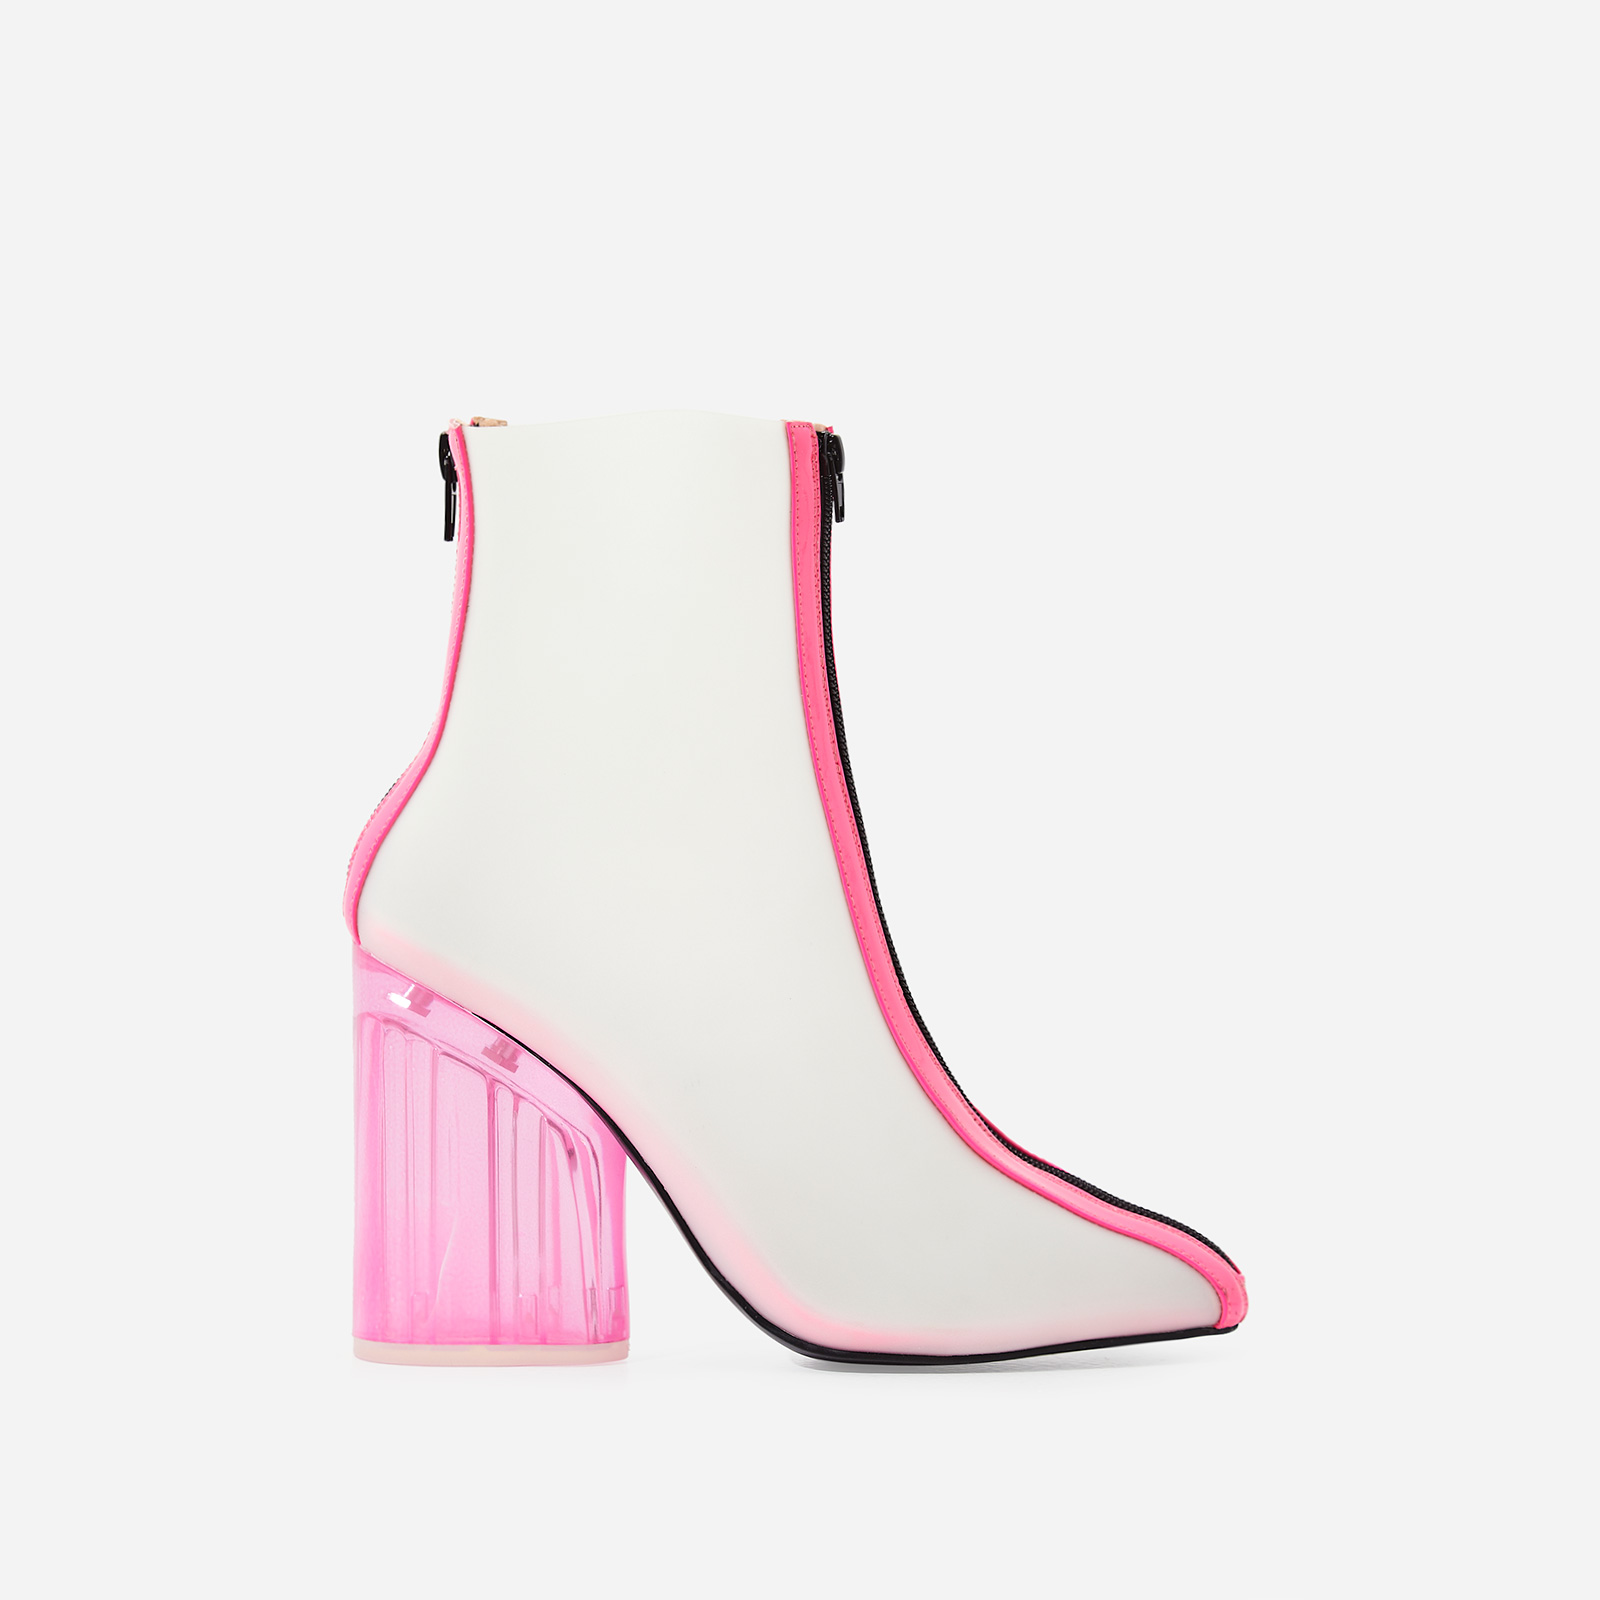 Ice Frosted Perspex Ankle Boot In Neon Pink Patent